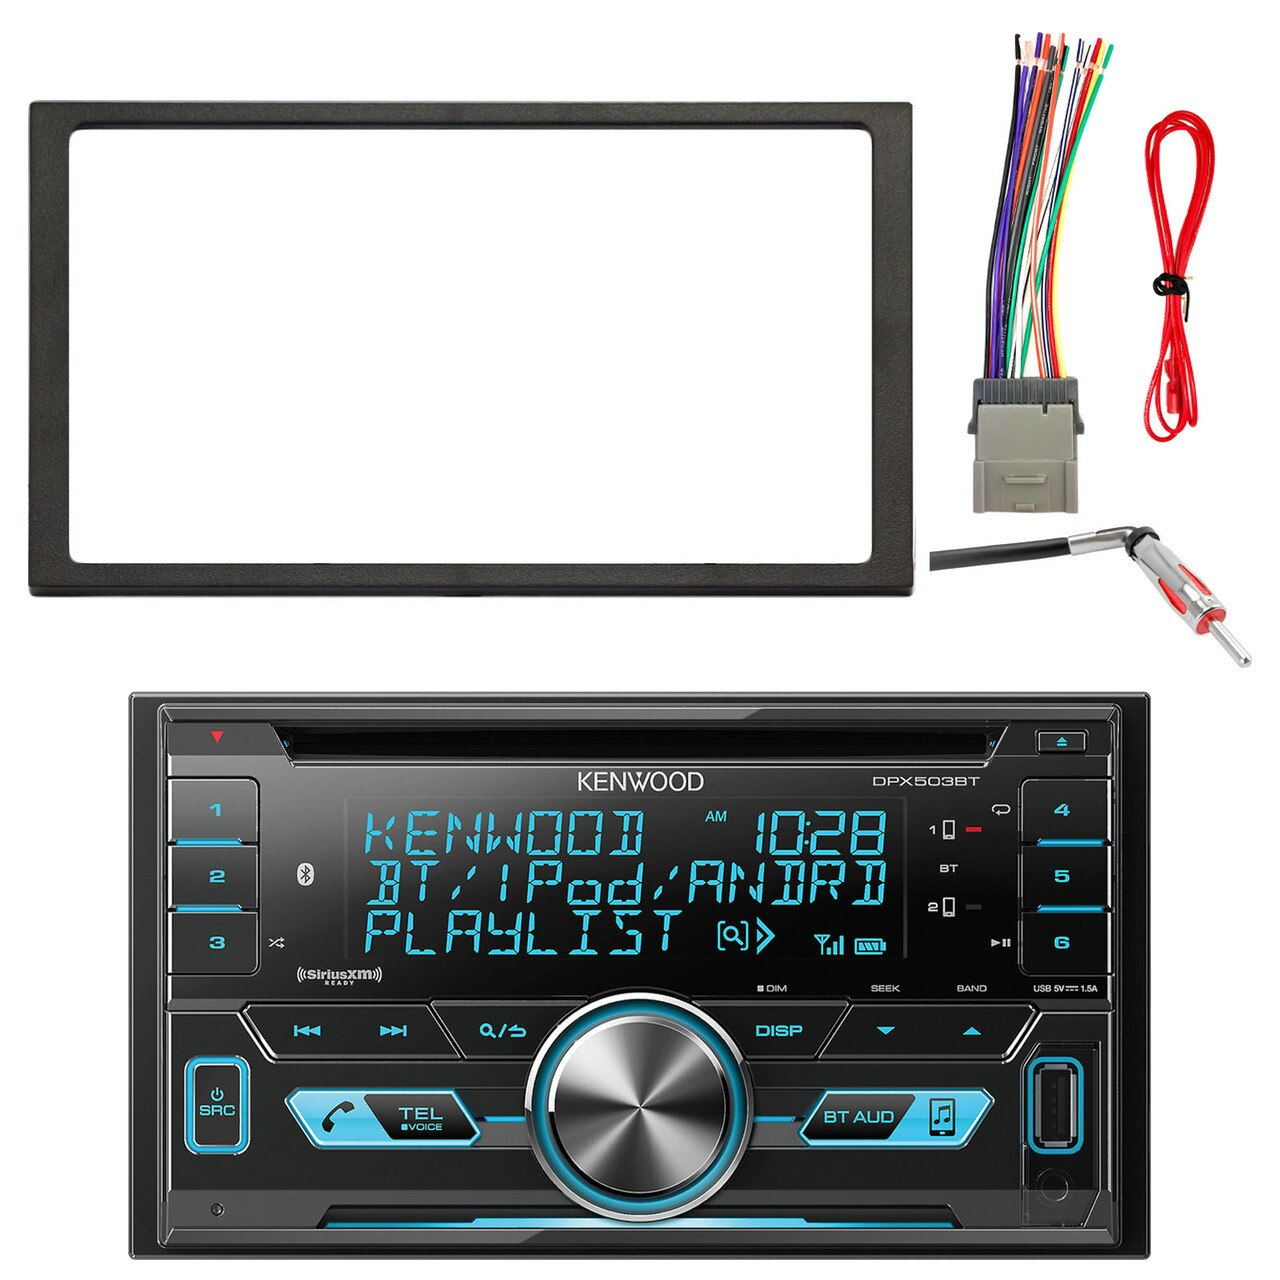 Xw 5798 Ouku Double Din Stereo Wiring Diagram Together With